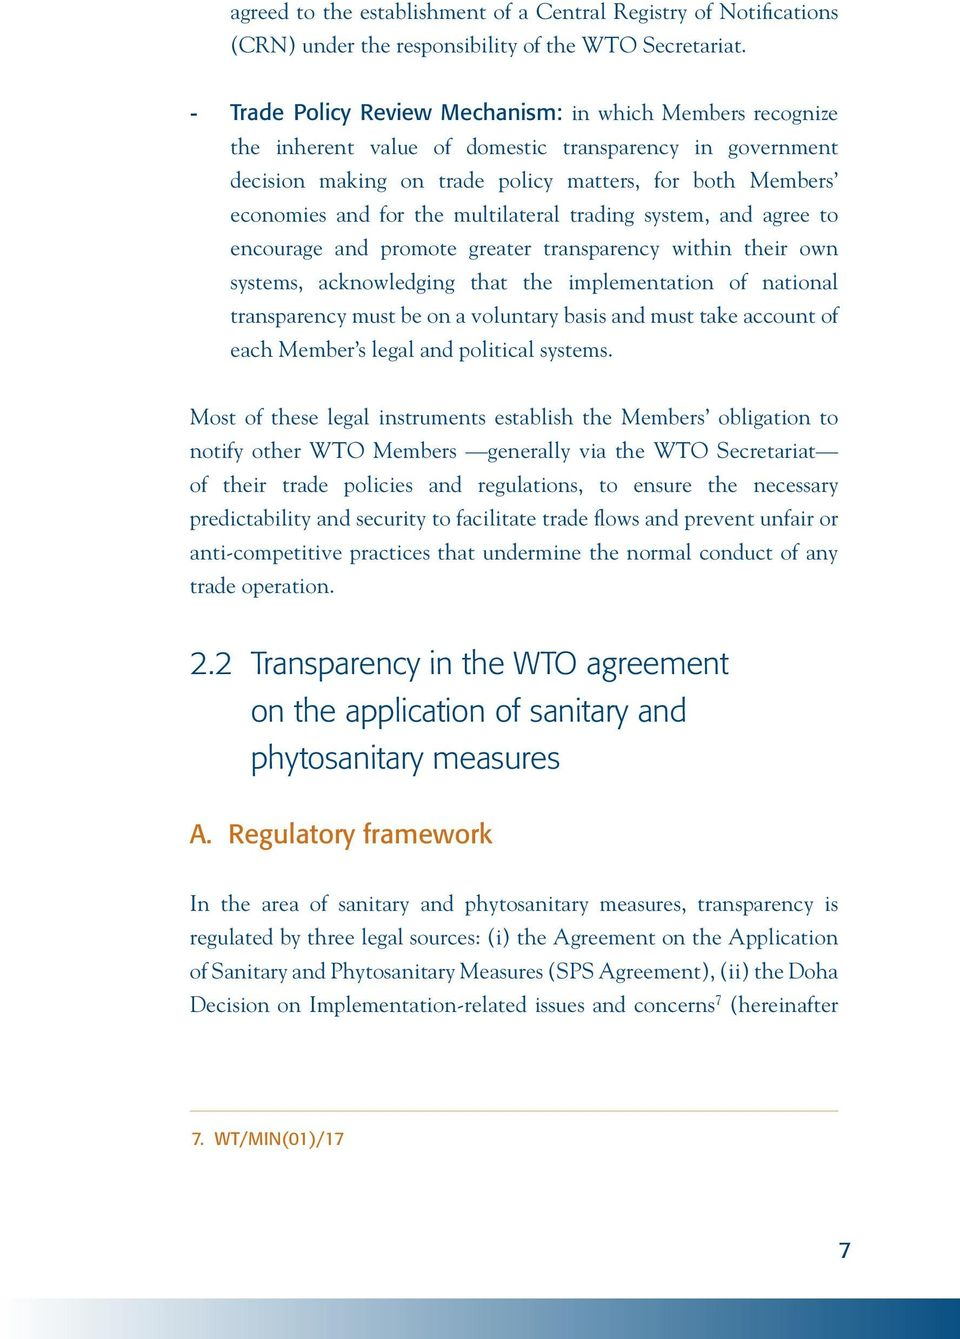 multilateral trading system, and agree to encourage and promote greater transparency within their own systems, acknowledging that the implementation of national transparency must be on a voluntary